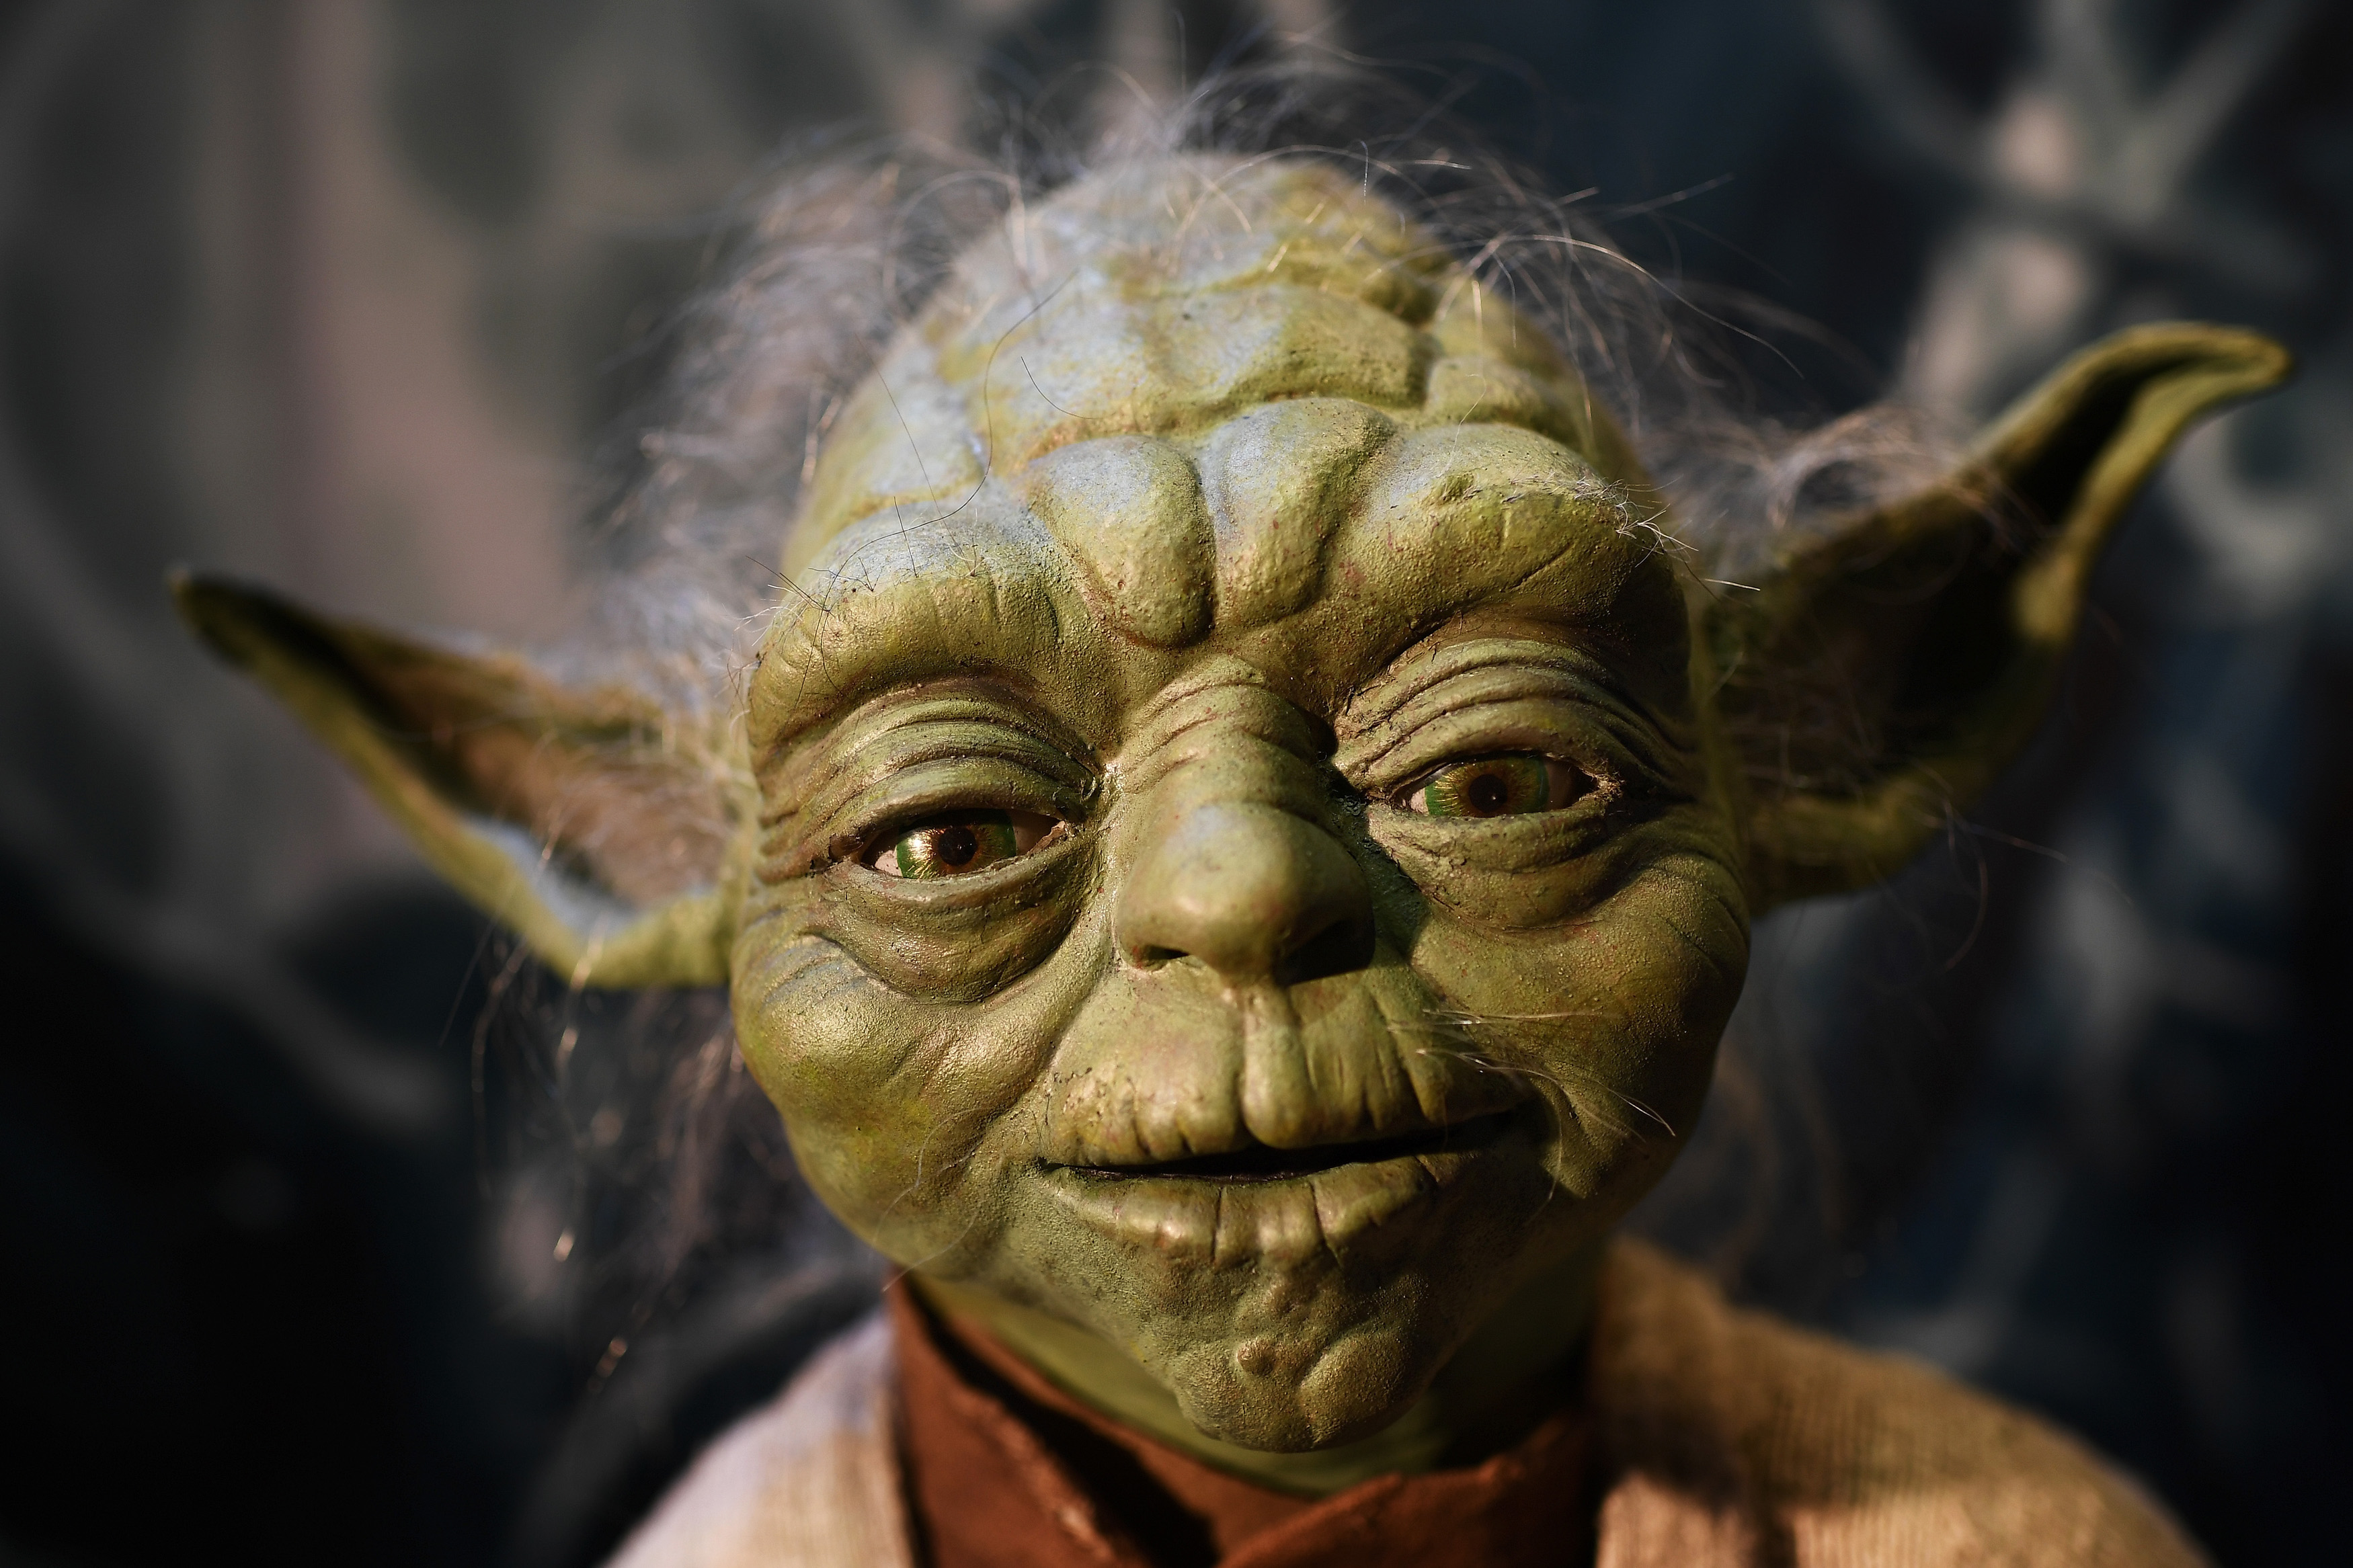 MUNDANE MYSTERIES: What species is Yoda? And is he considered a Muppet?